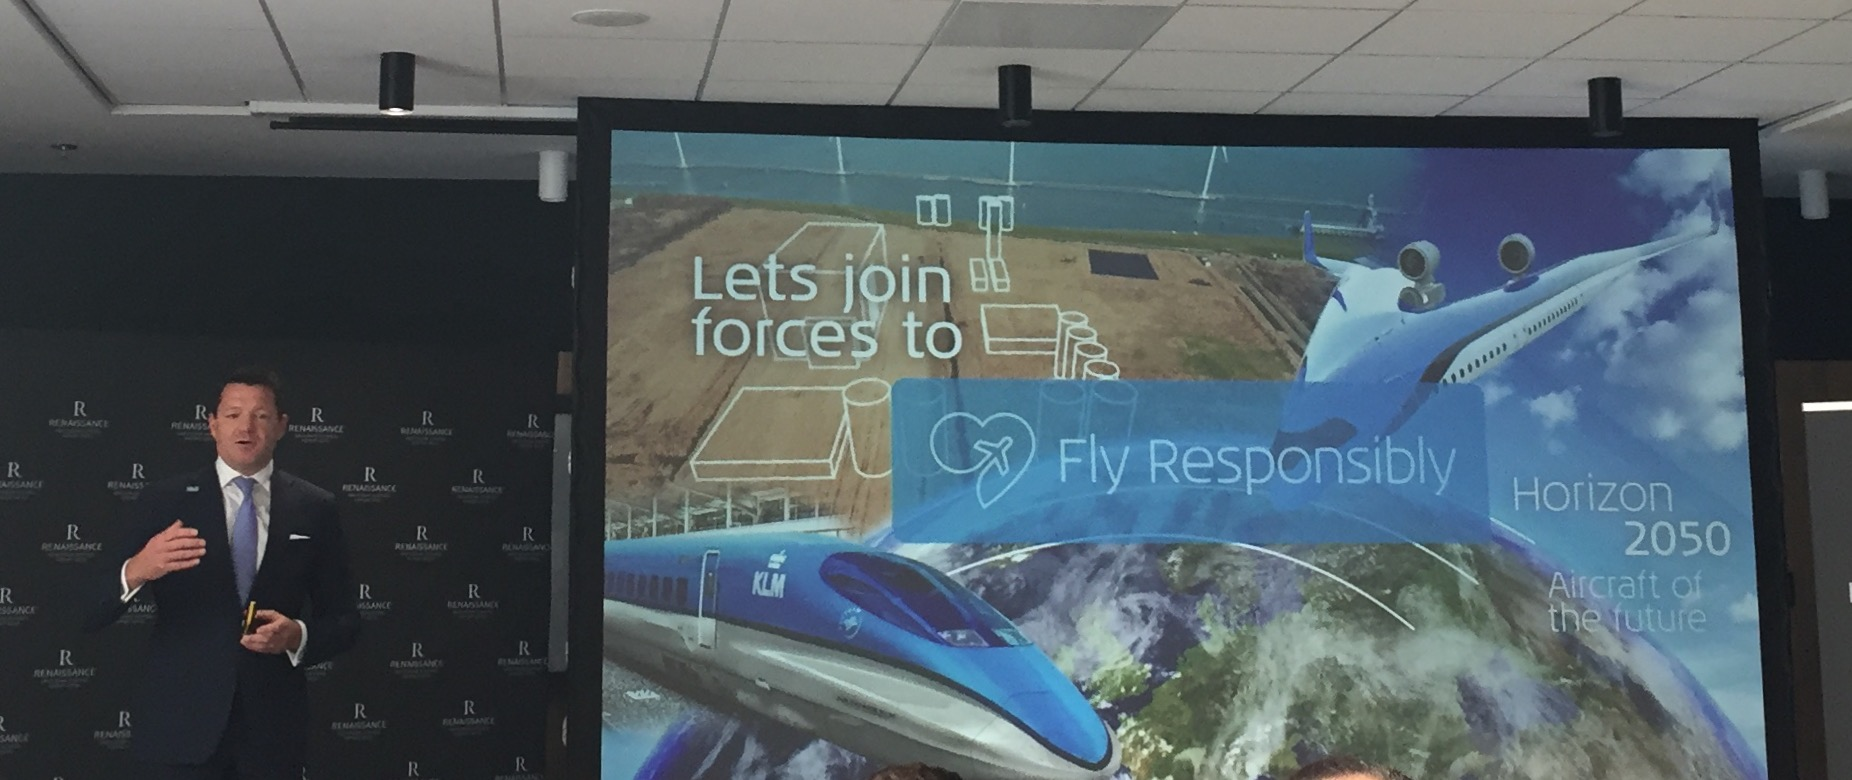 "KLM has launched the "" Fly Responsibly "" initiative"